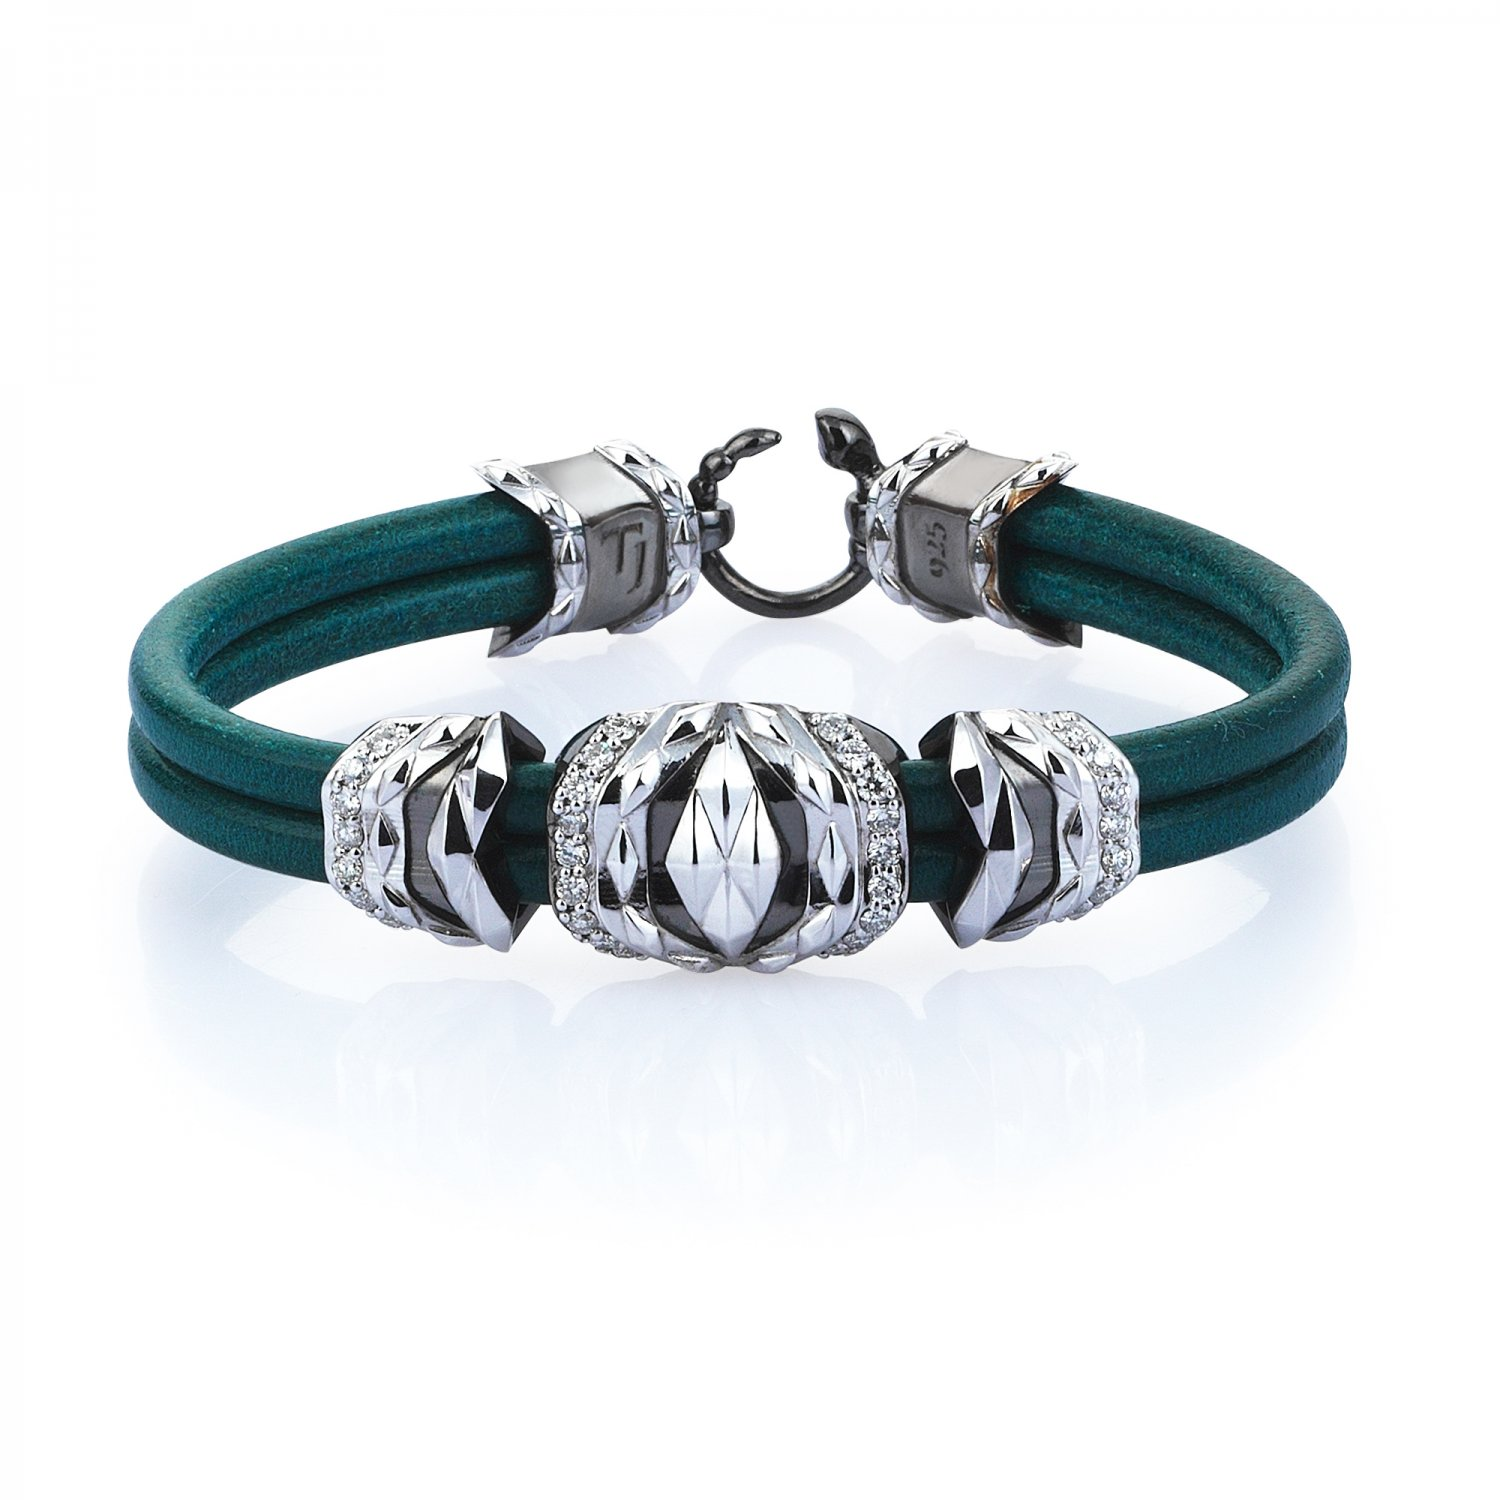 Natural Turquoise Leather Silver Cubic Bracelet in Black & White Rhodium with Diamonds